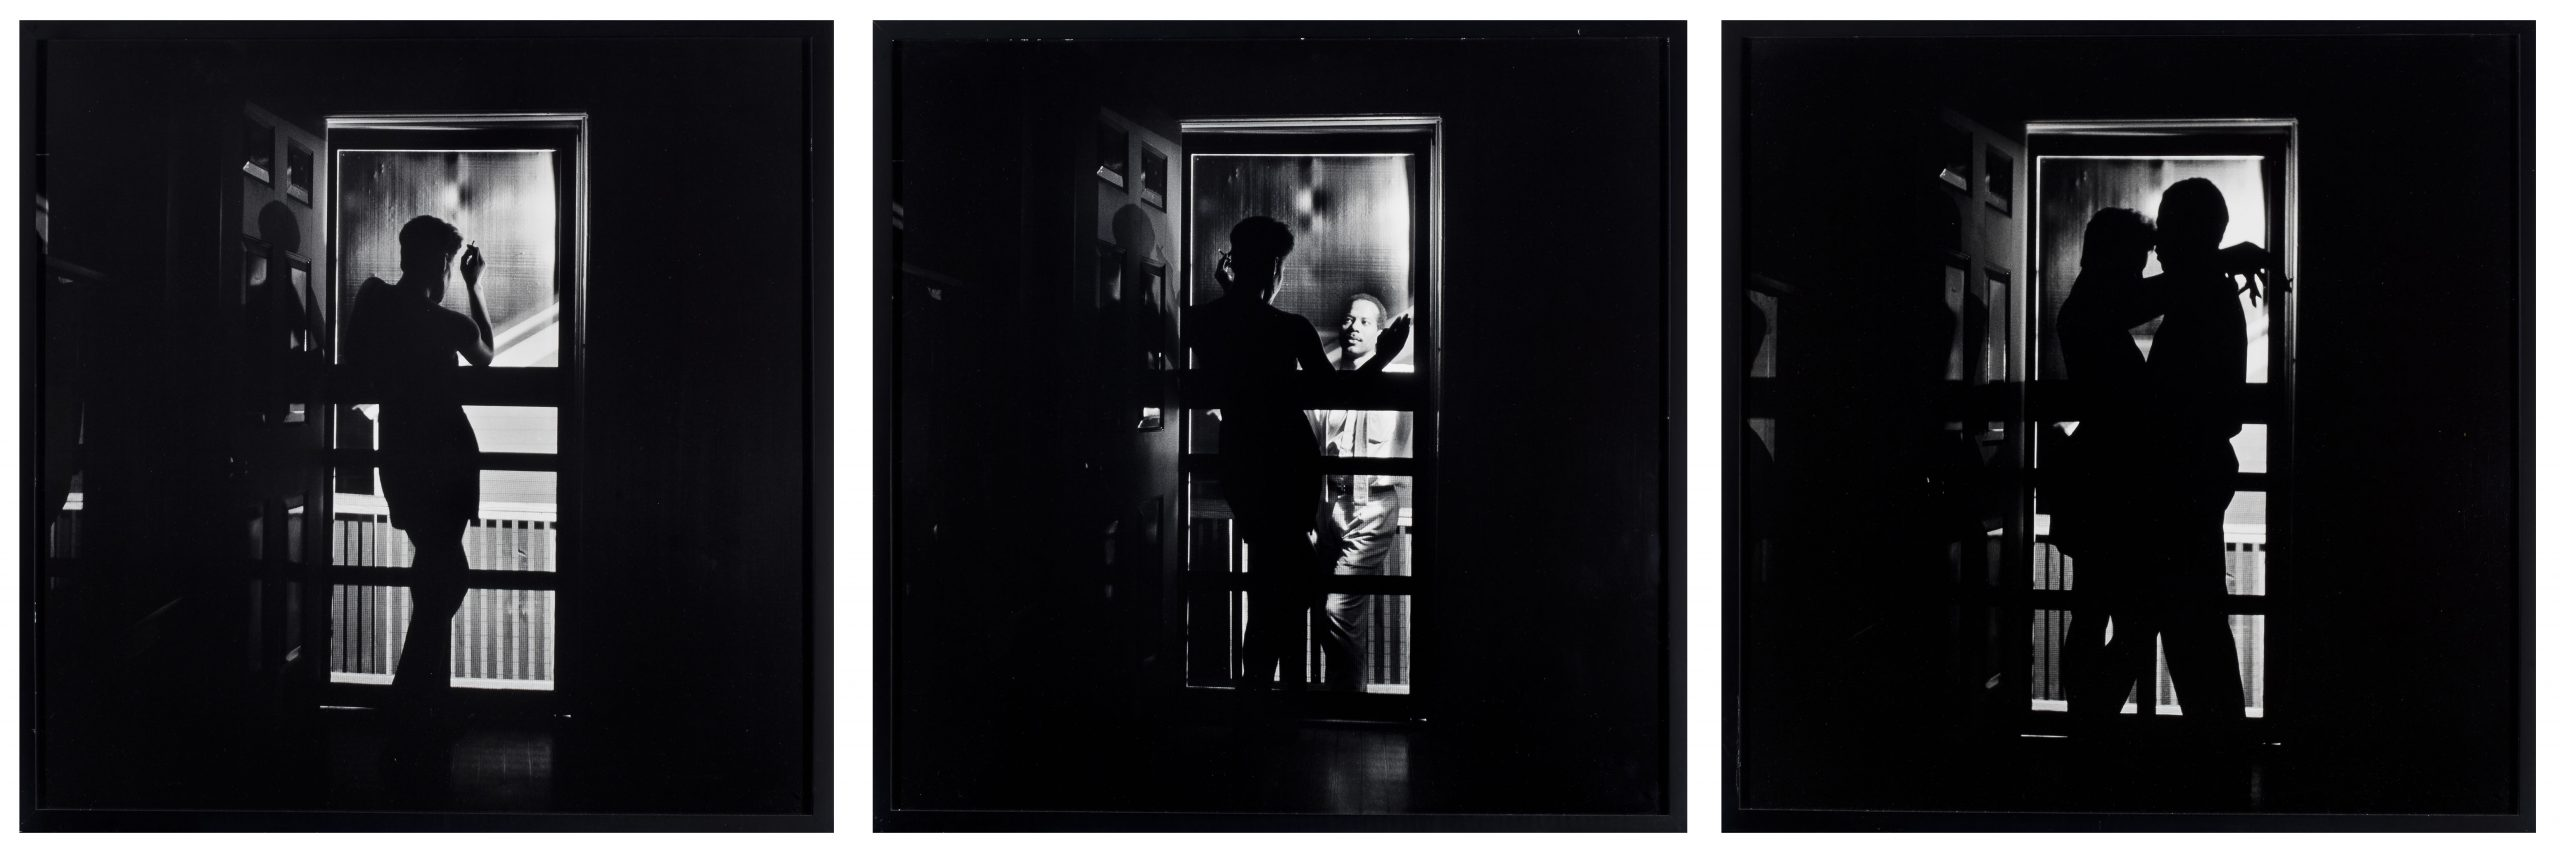 Carrie Mae Weems' photo-based triptych Black Love